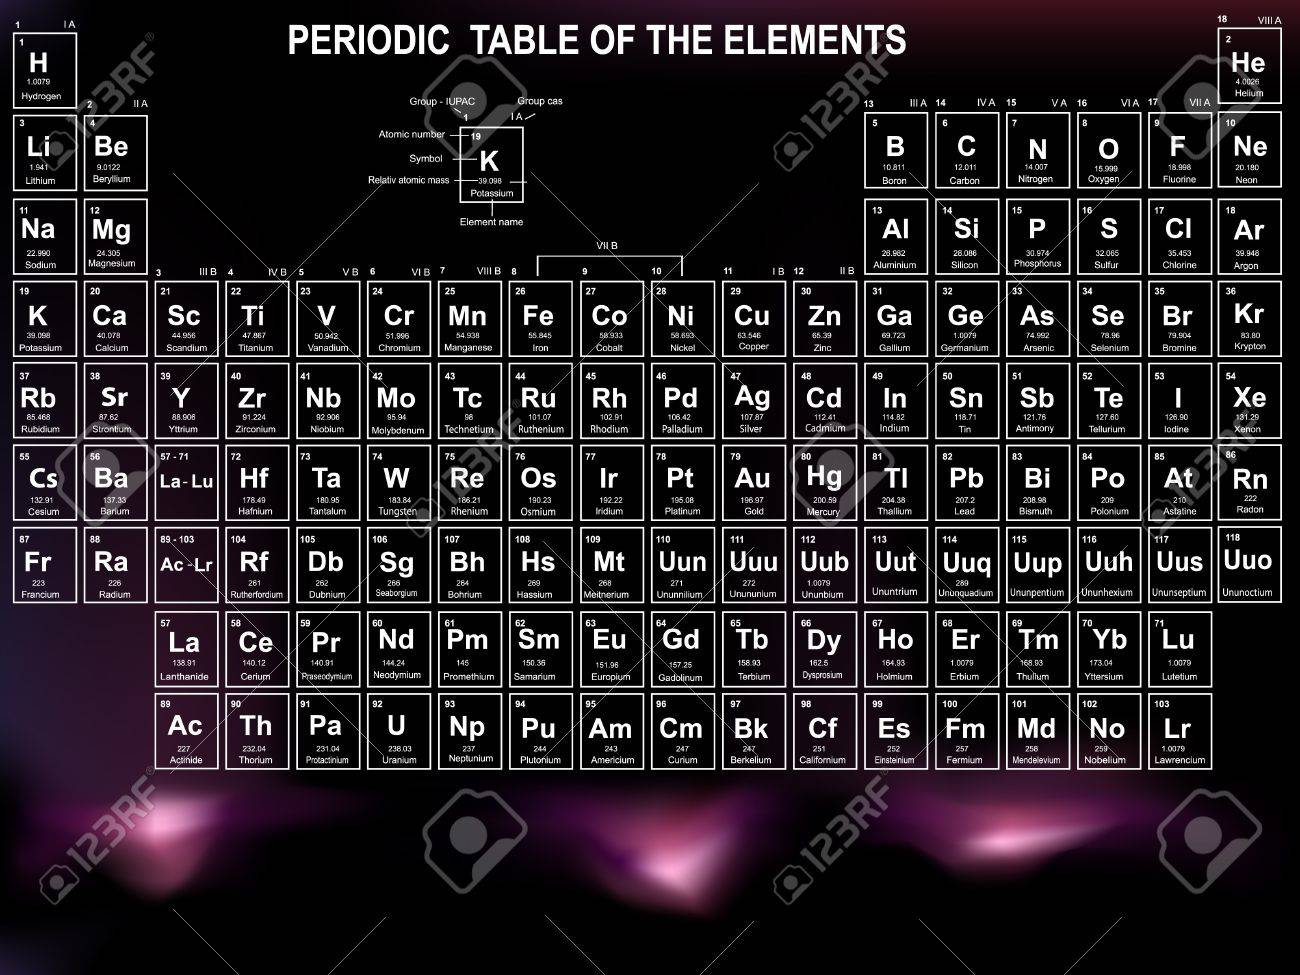 Au symbol periodic table gallery periodic table images periodic table of the elements with atomic number symbol and periodic table of the elements with gamestrikefo Choice Image